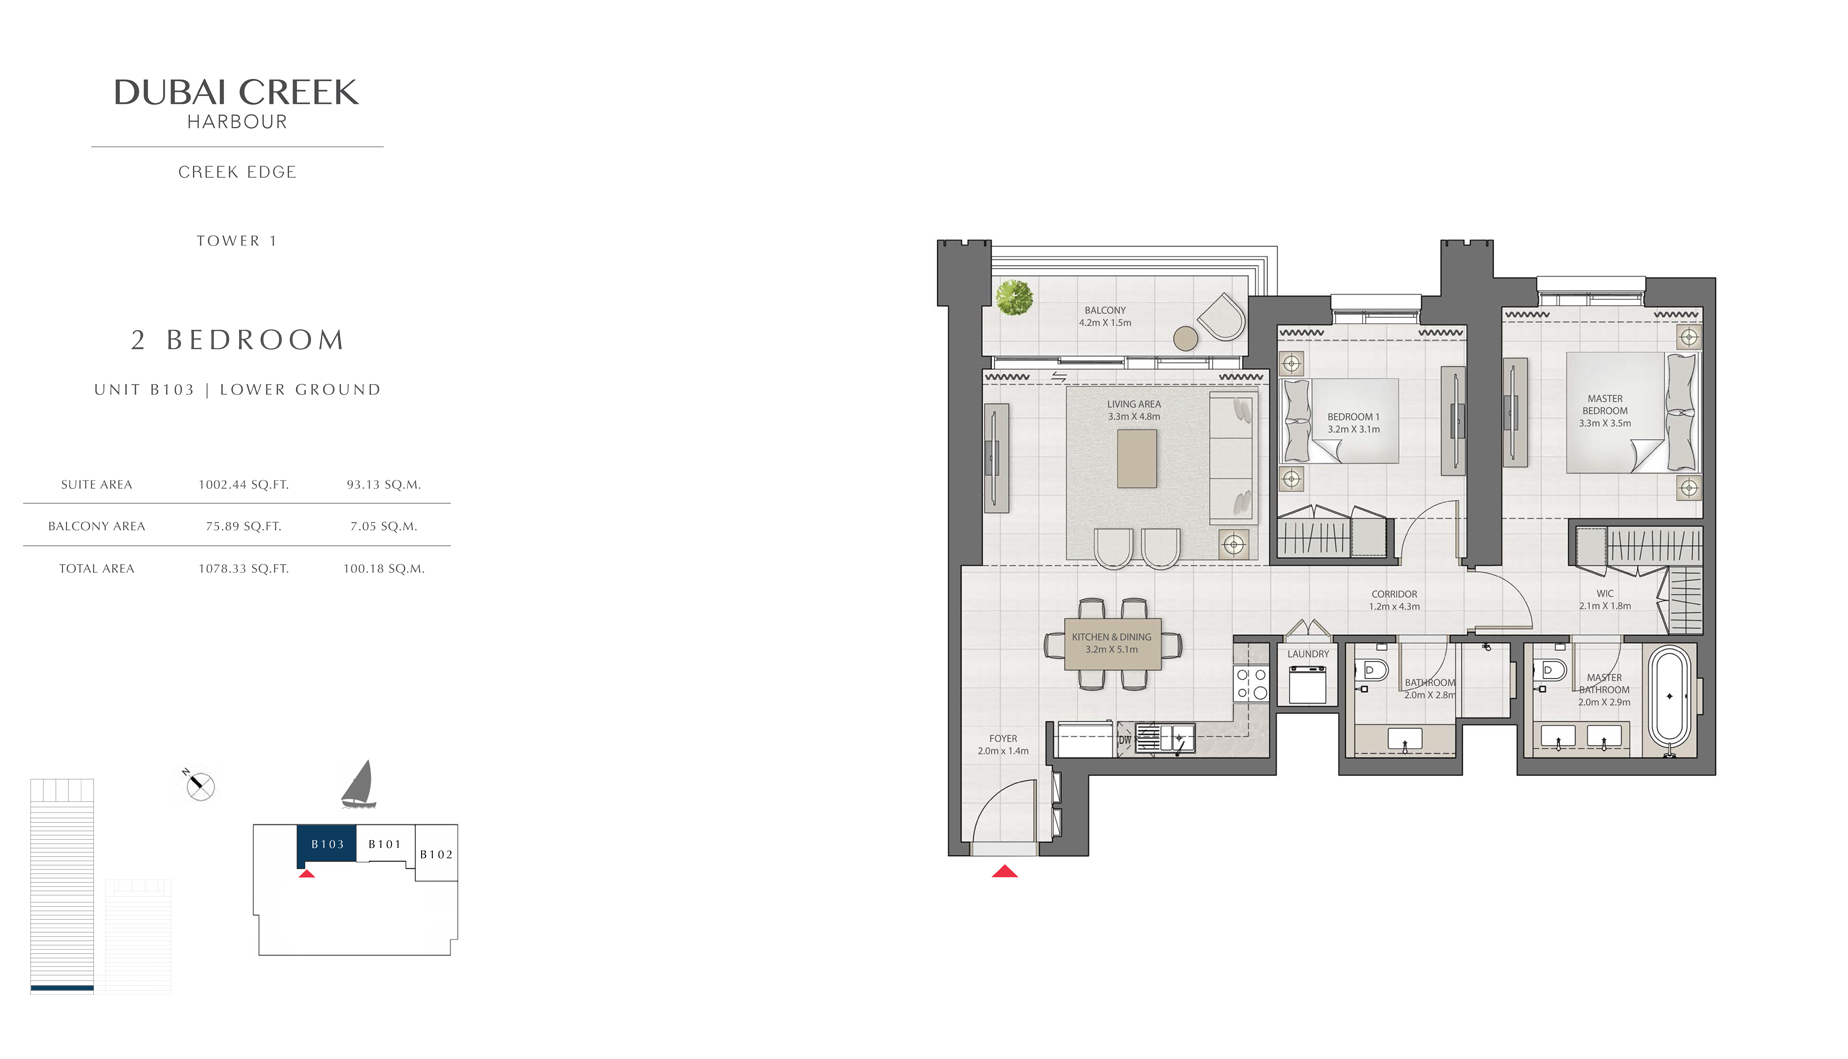 2 Bedroom Tower 1 Unit B103 Level G Size 1078 sq.ft